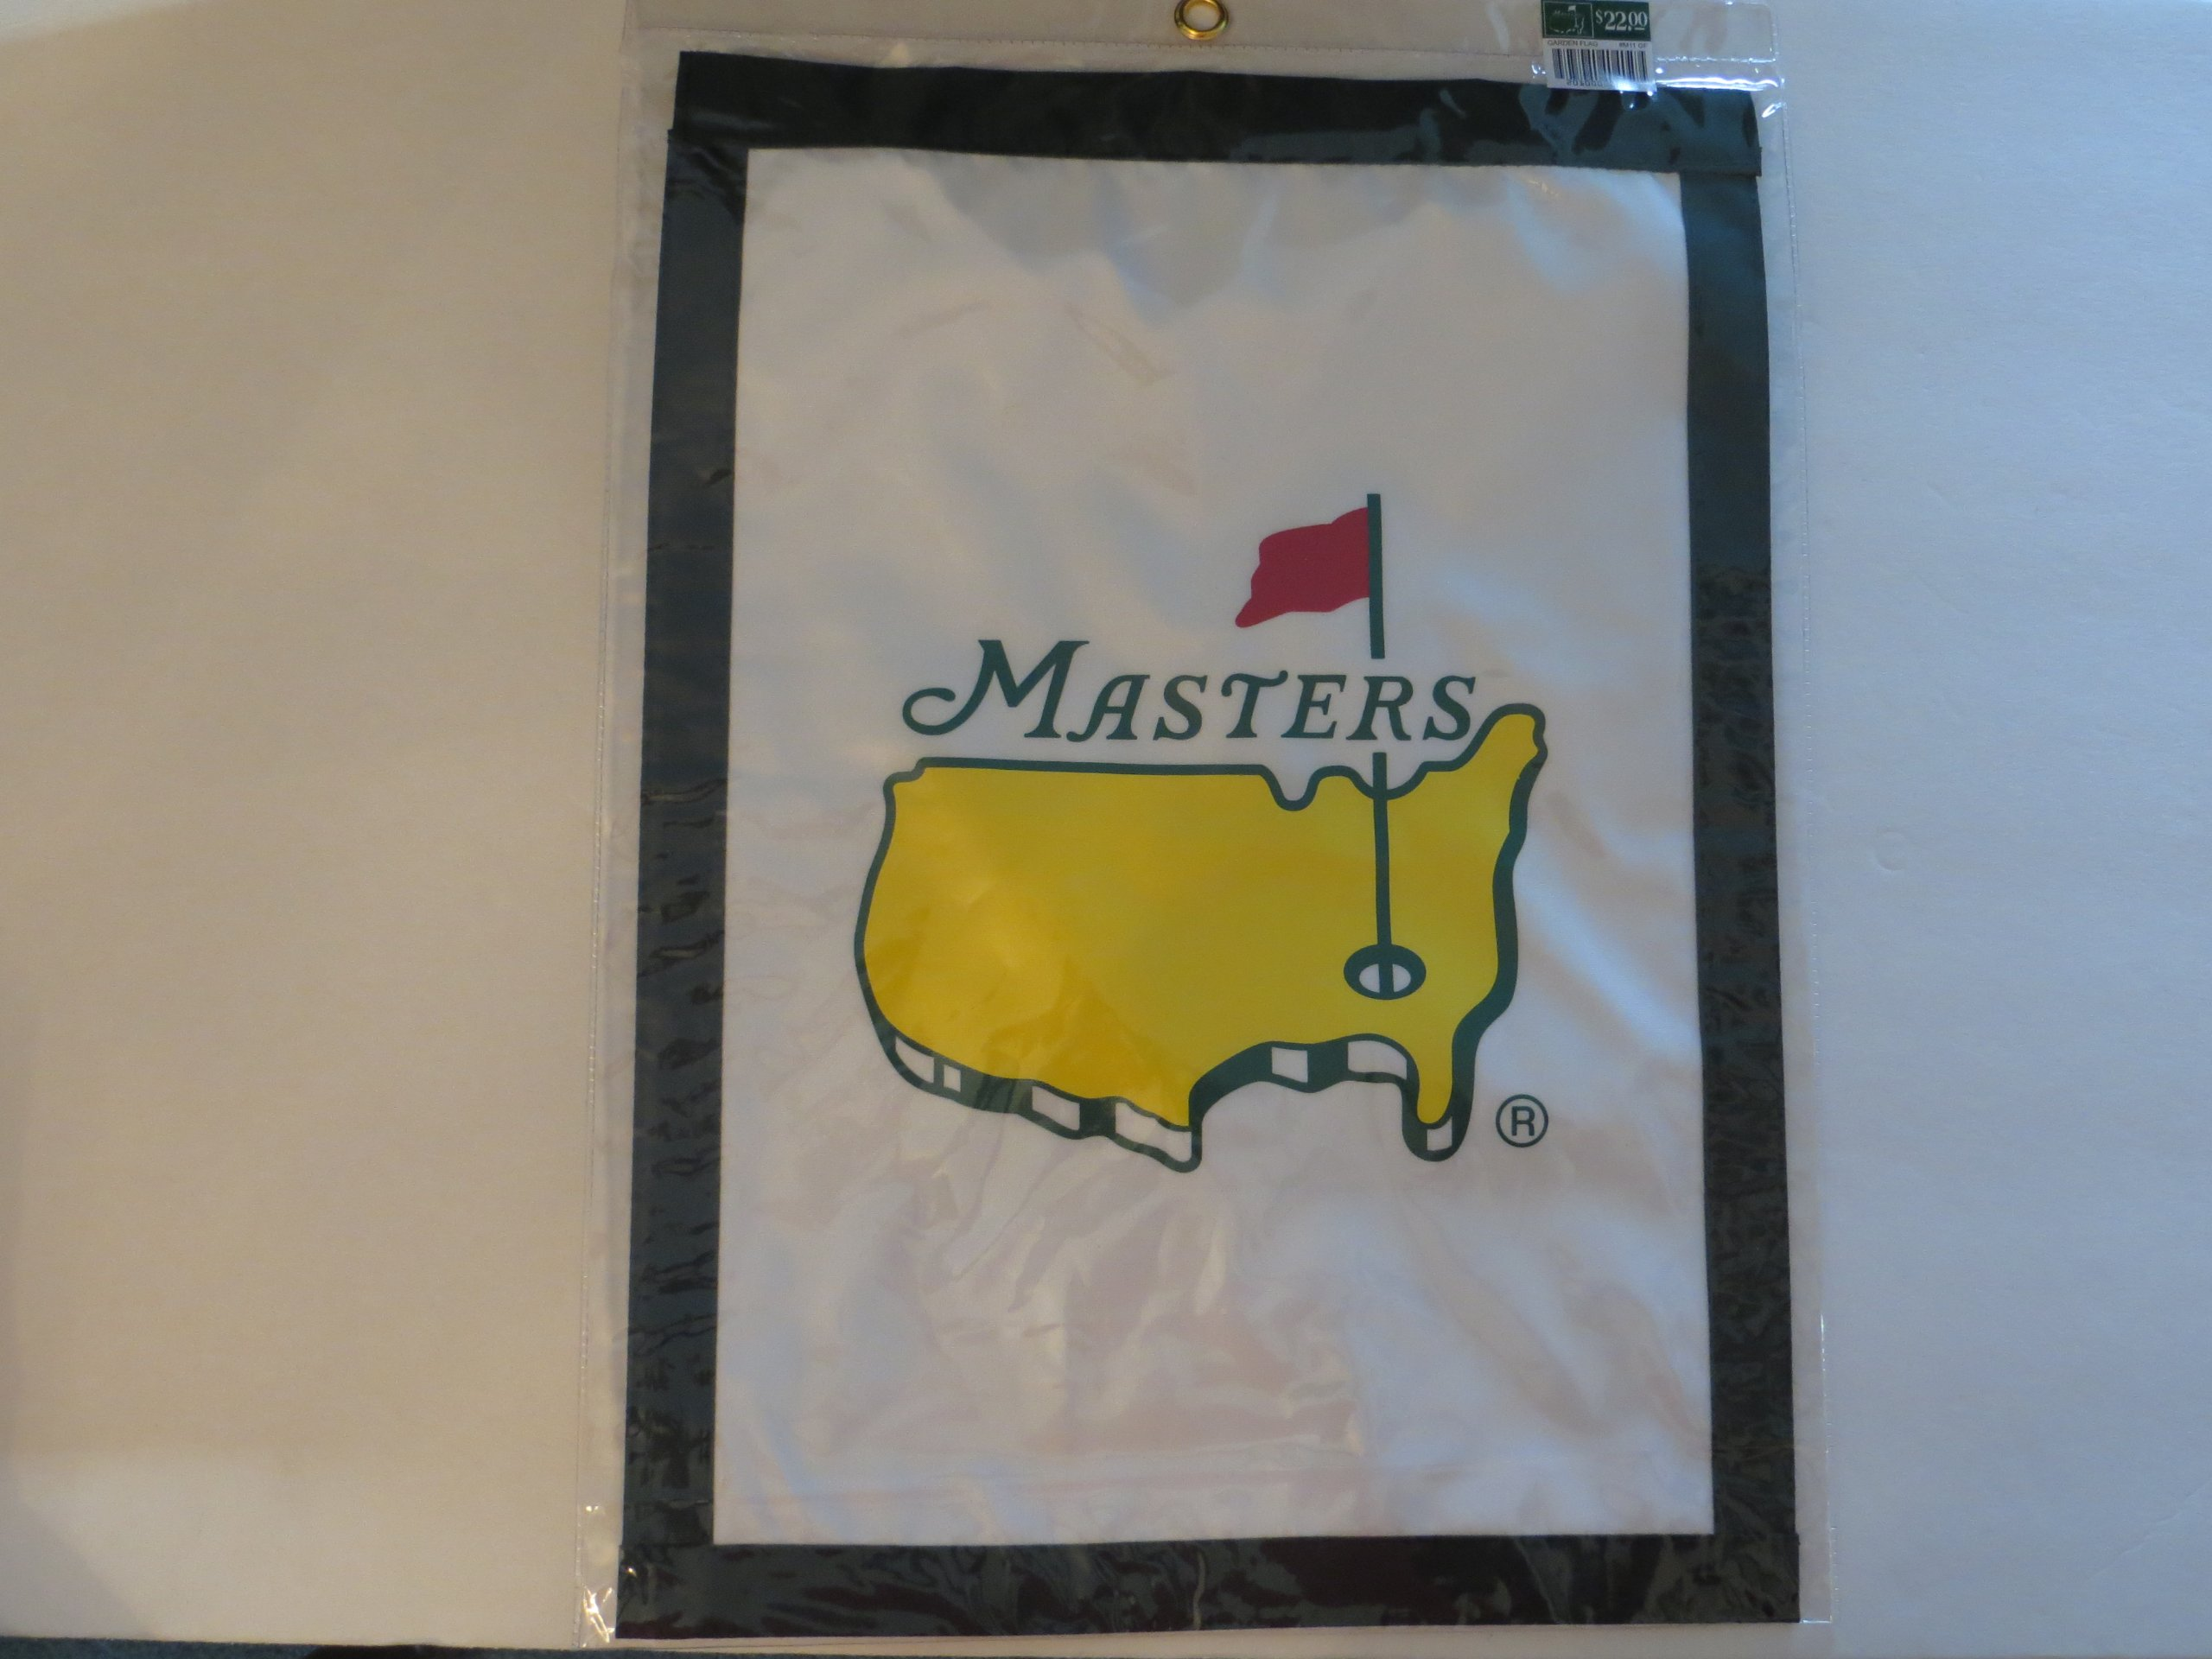 2018 Masters golf Garden Flag augusta national old style great for autographs pga